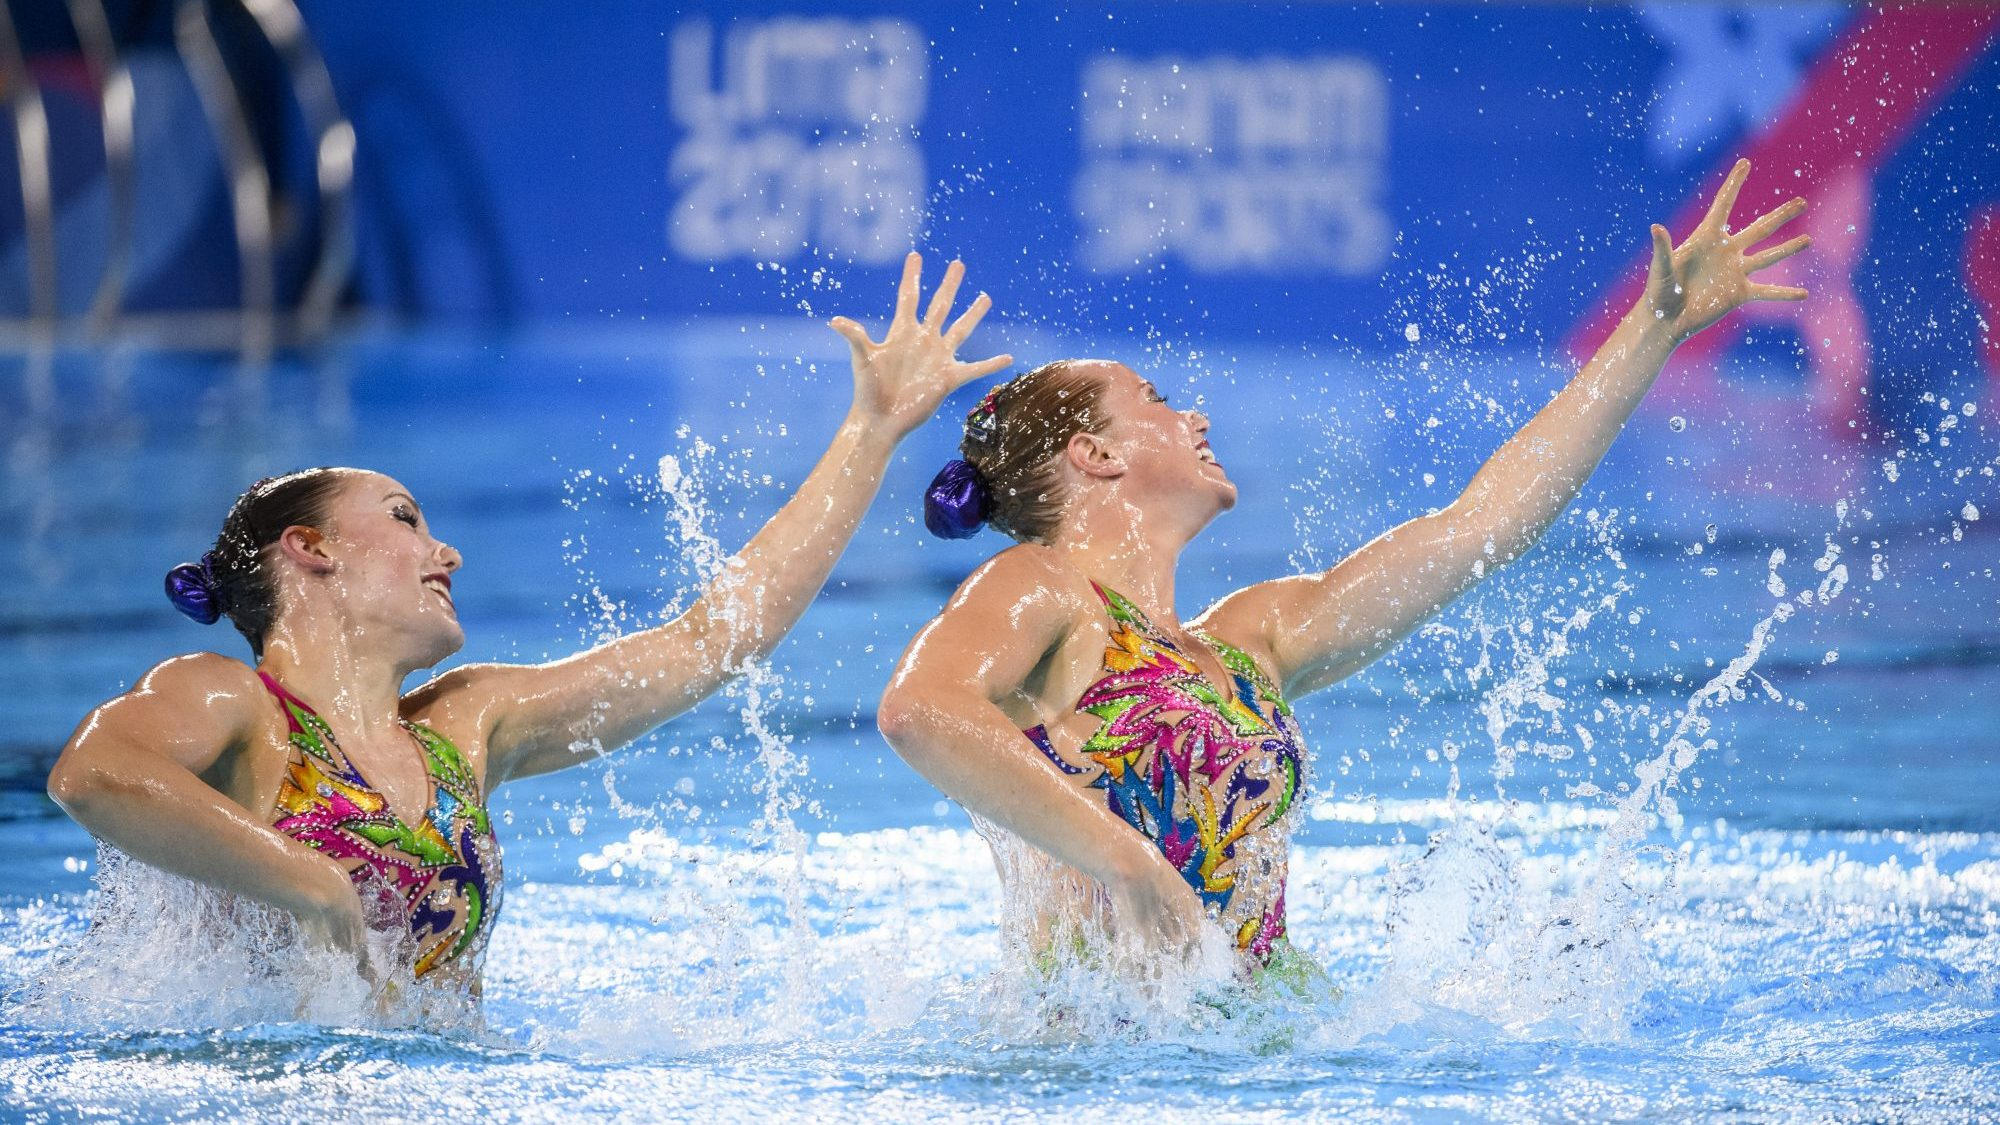 Jacqueline Simoneau and Claudia Holzner compete in the duet free routine at Lima 2019